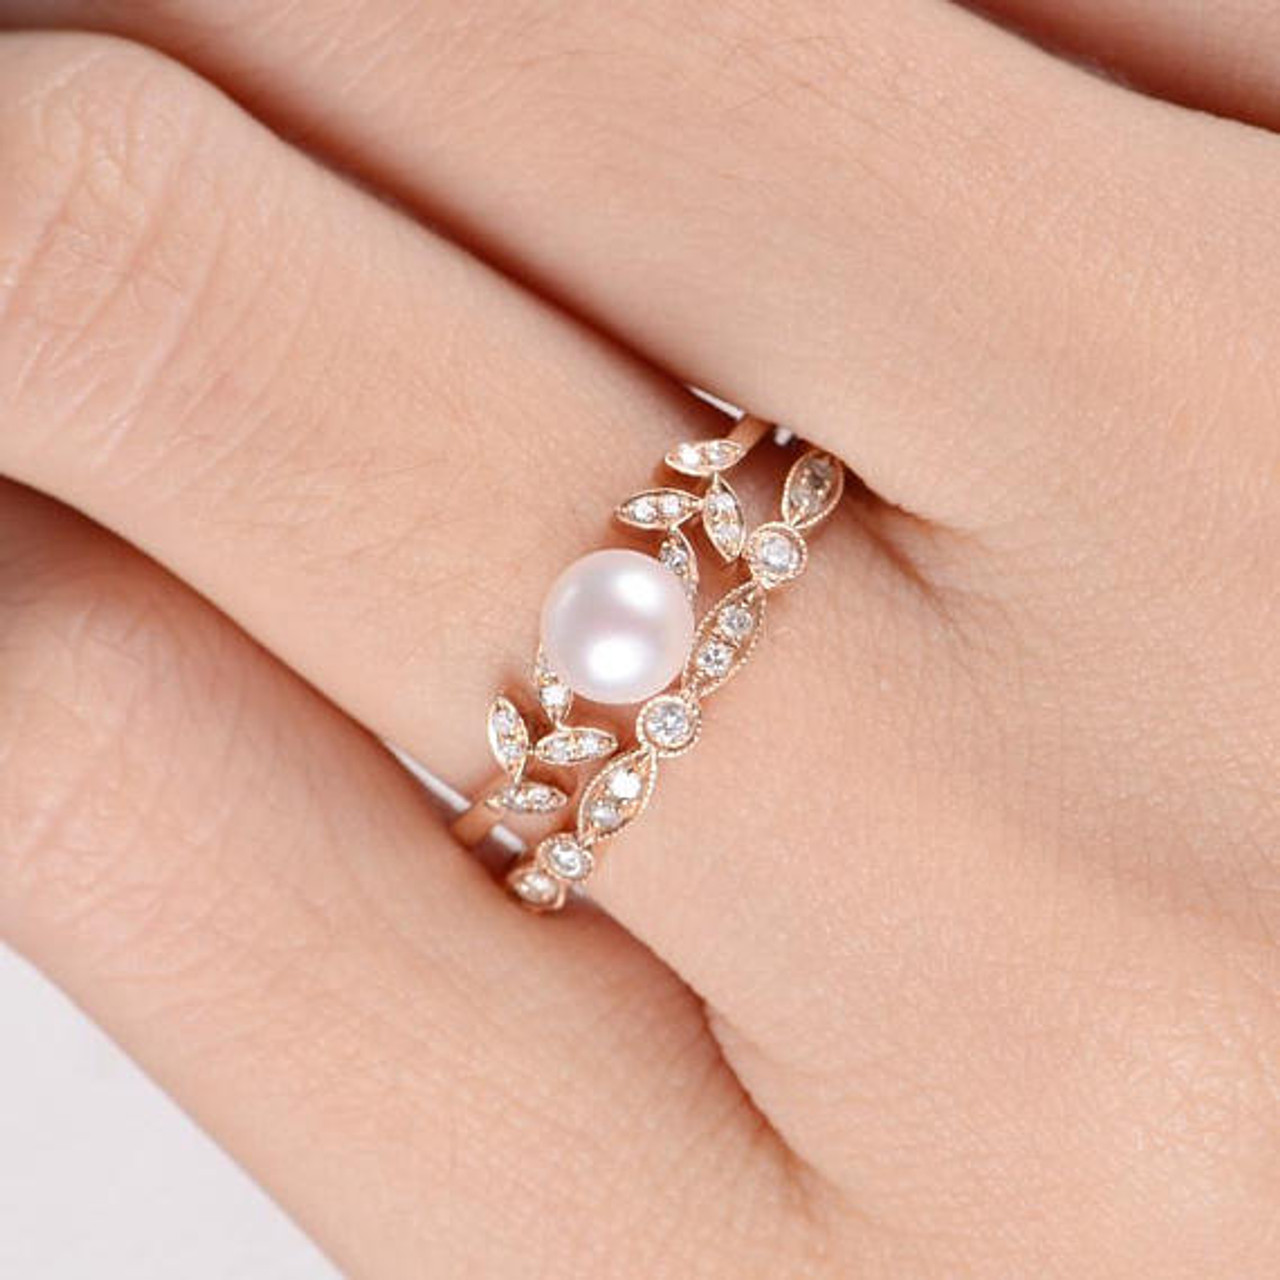 rose rings wedding diamond band akoya deco eternity sets bridal art halo il antique jeym jewellery promise women ring anniversary engagement pearl gold